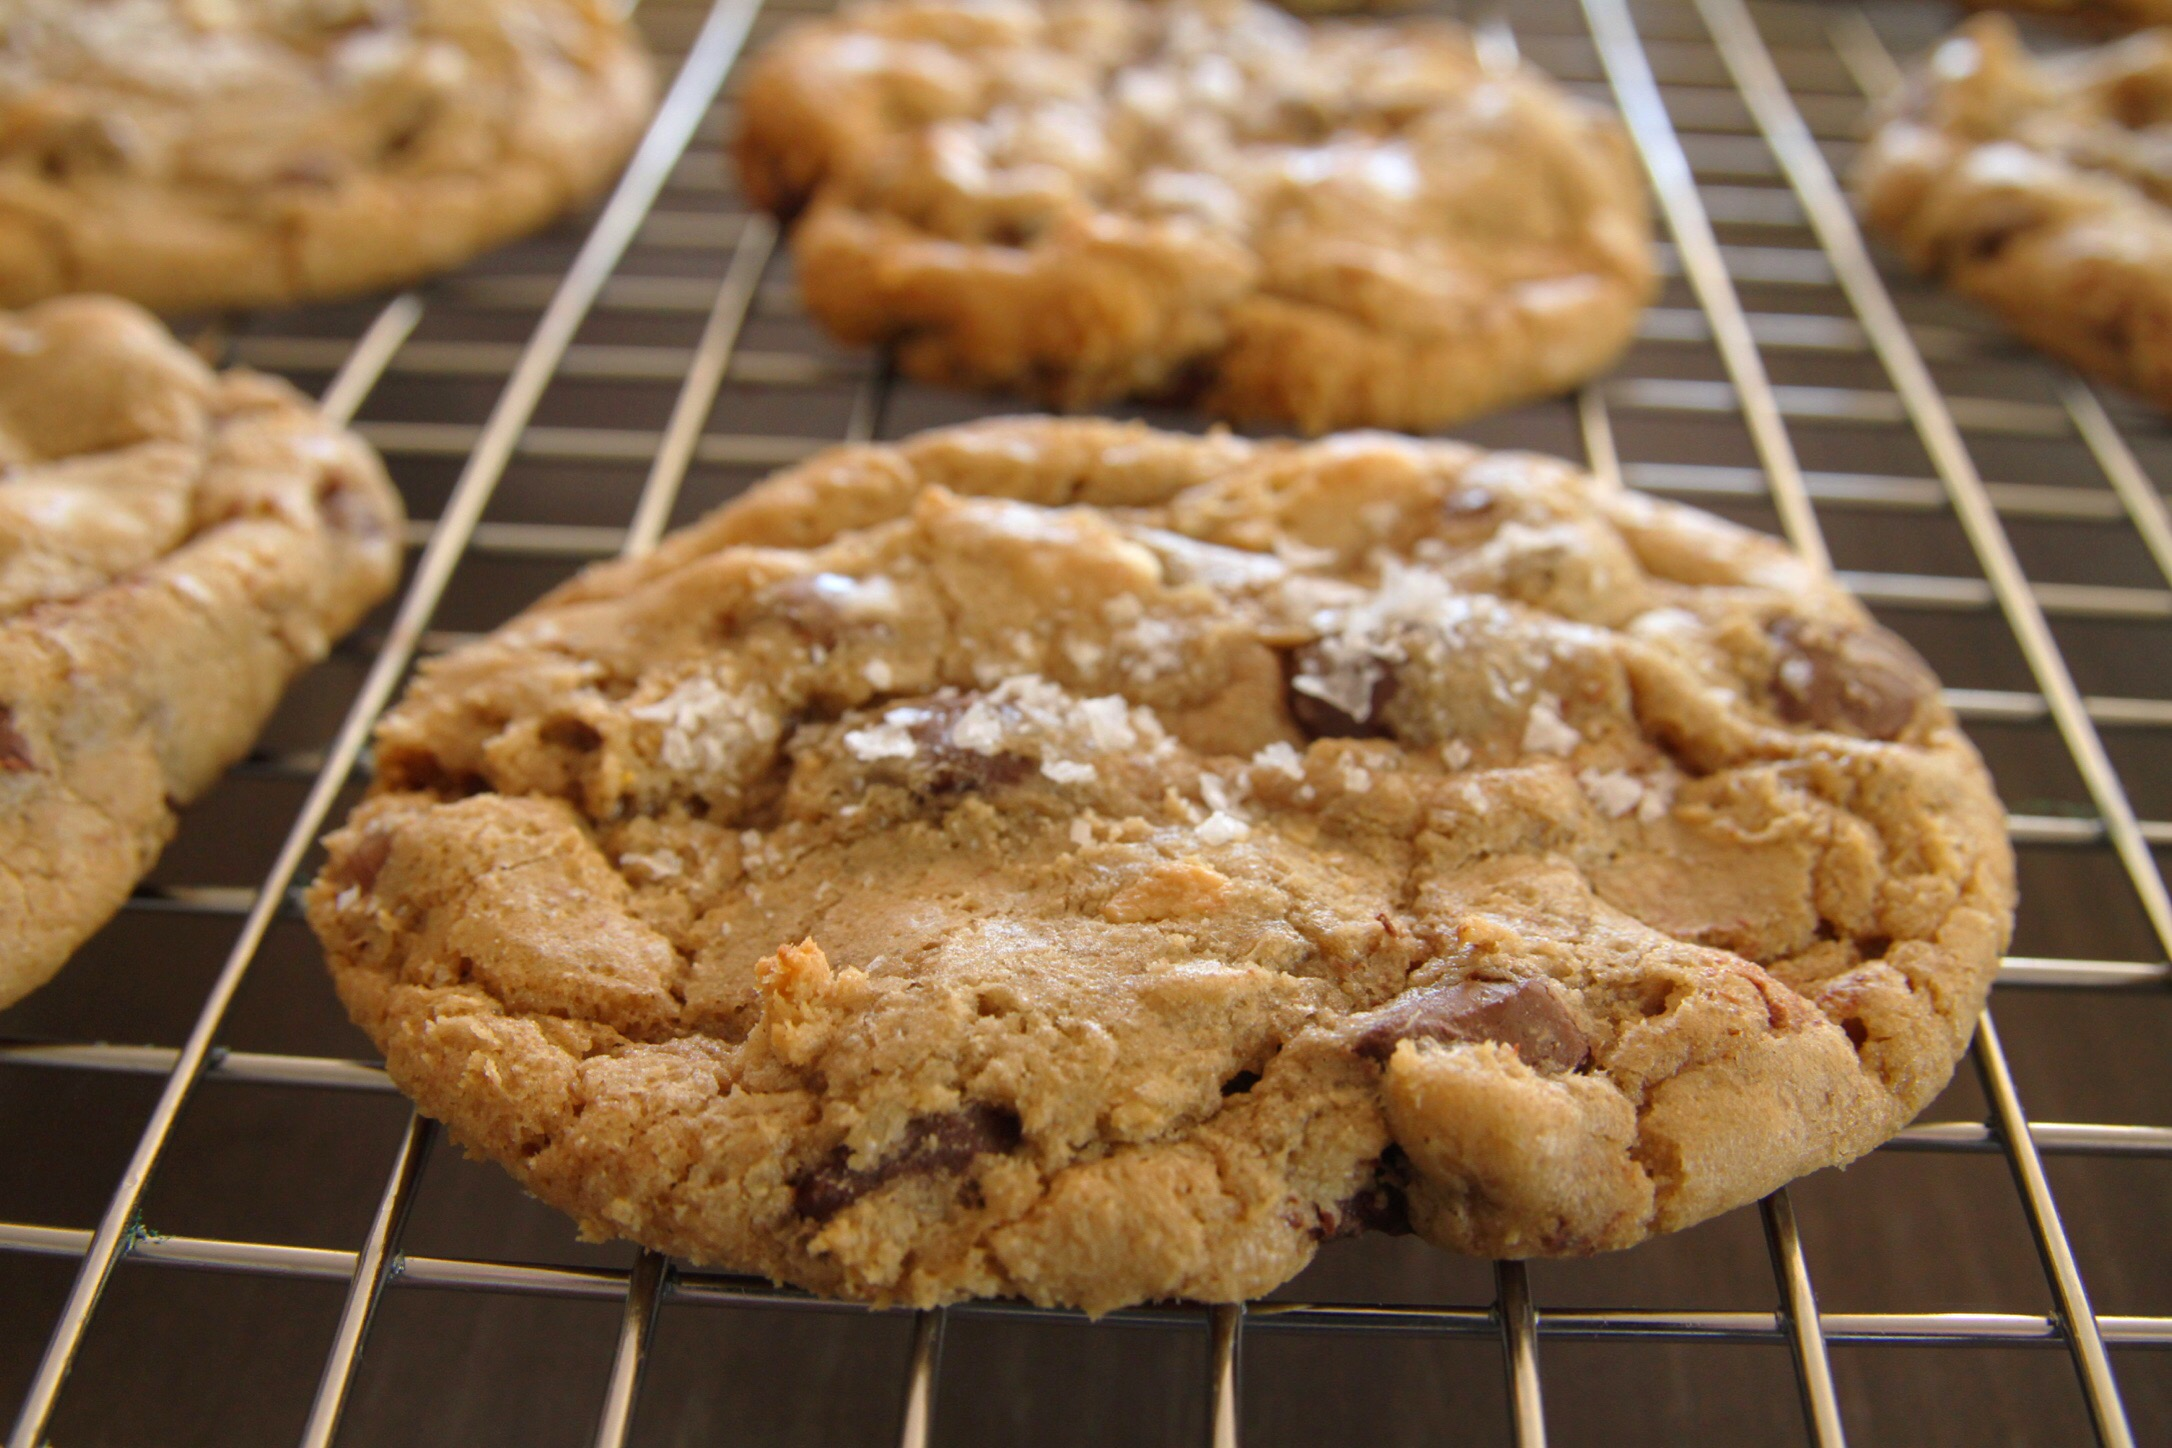 I baked my favorite batch of these GF cookies on New Year's Day which proves that my baking skills are continuing to improve (hooray!) and that my health-focused resolutions of 2018 had to be paused almost immediately. #priorities